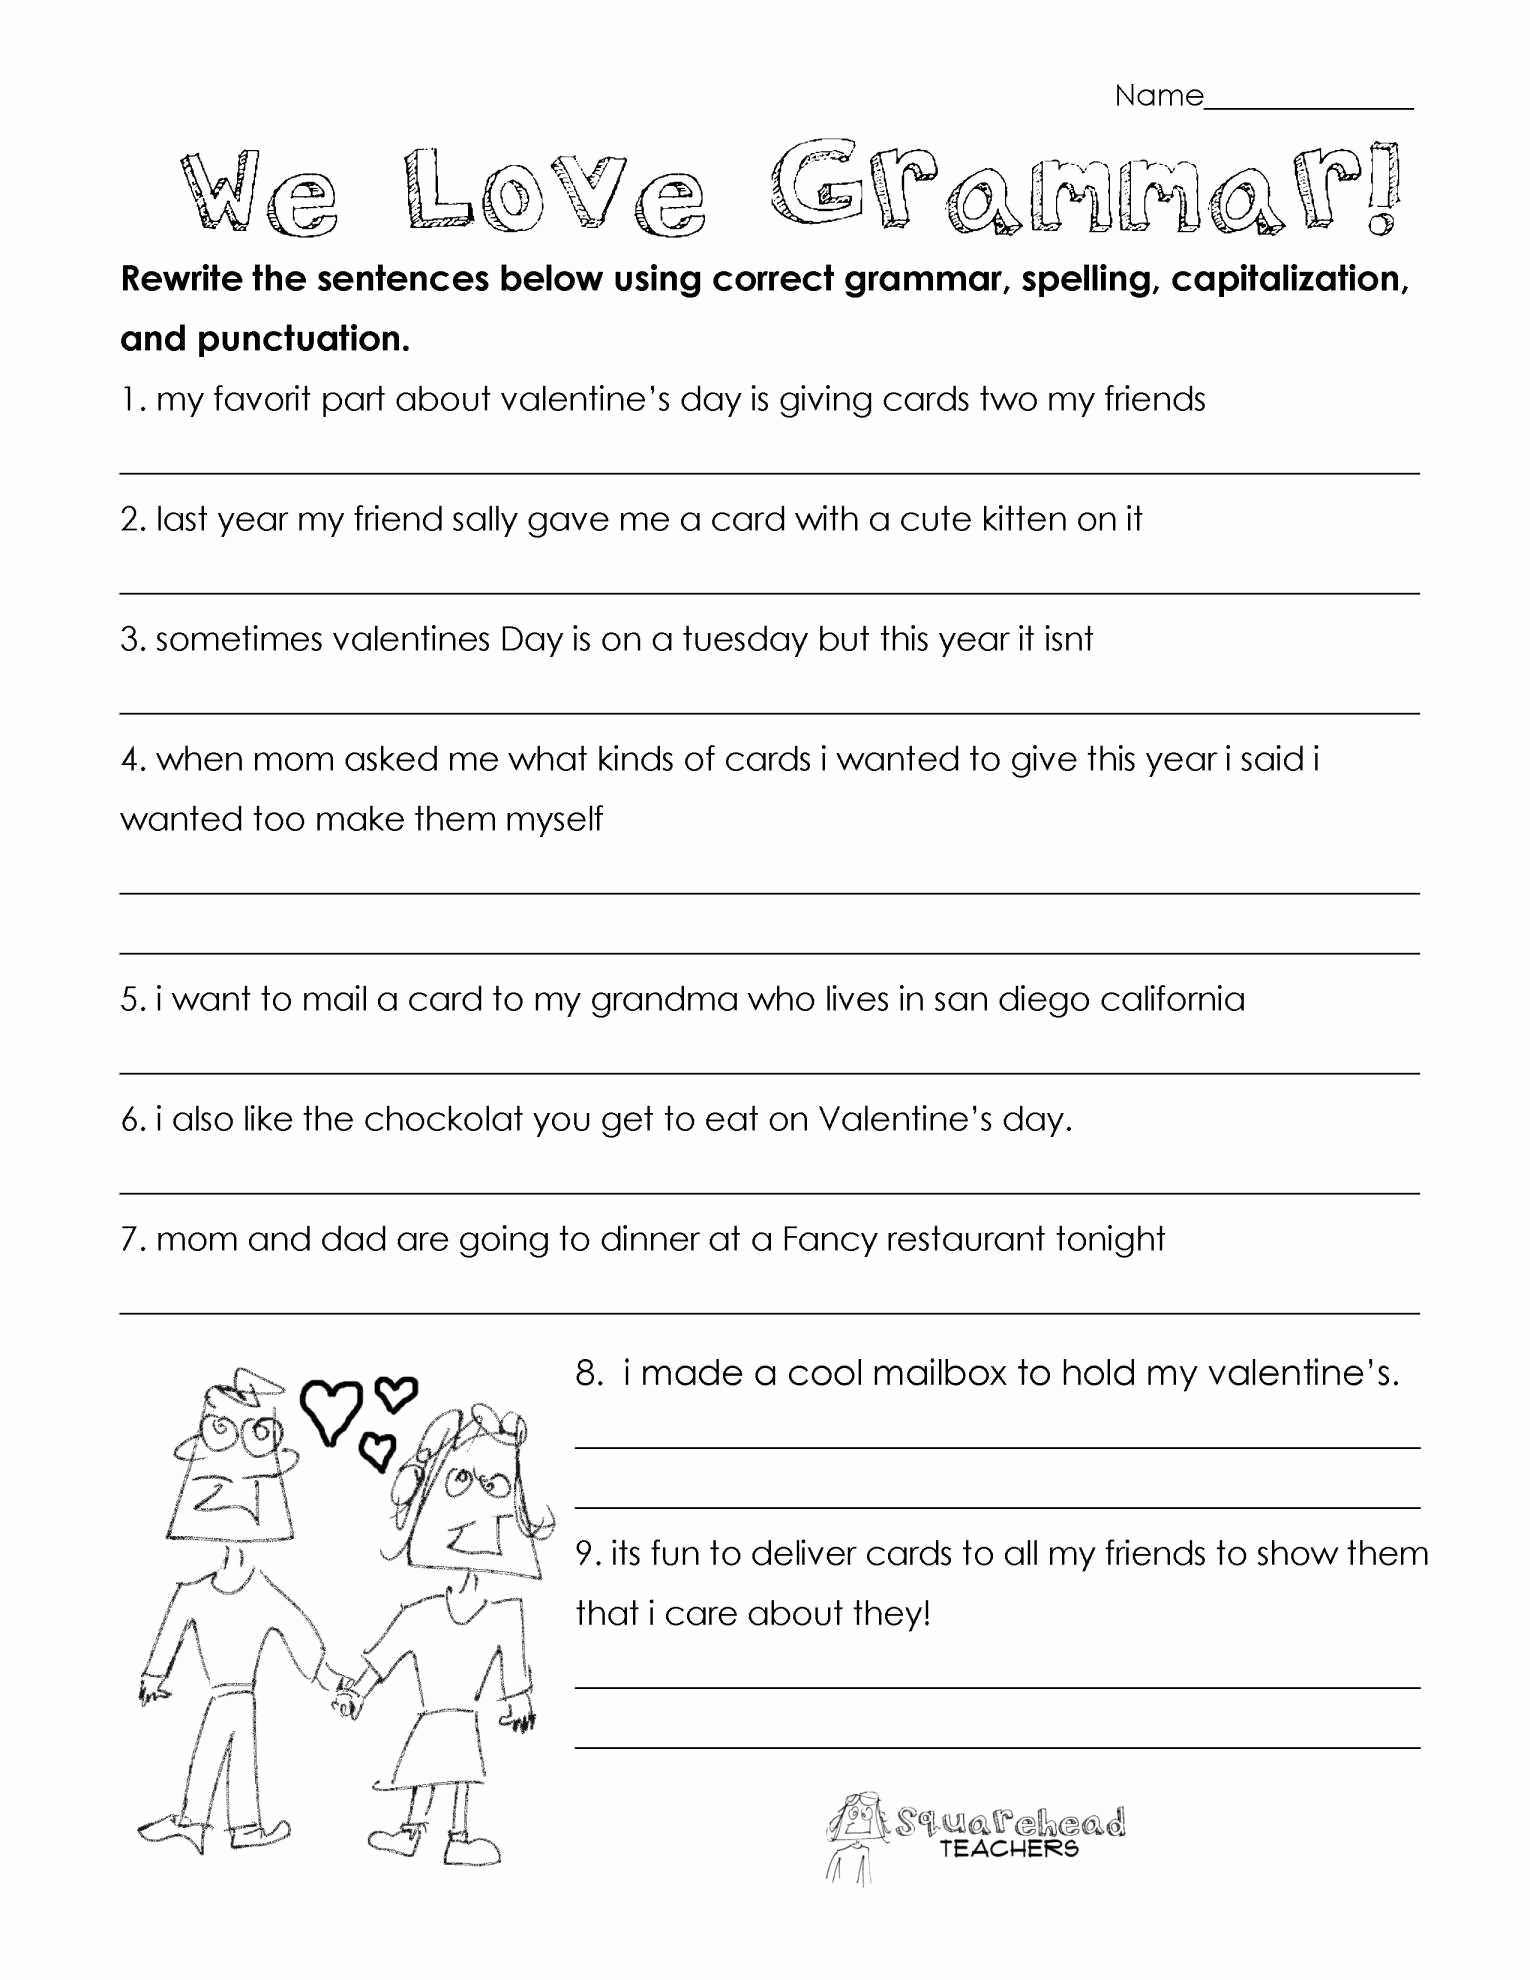 Language Arts Worksheets 8th Grade Lovely 20 8th Grade Language Arts Worksheets